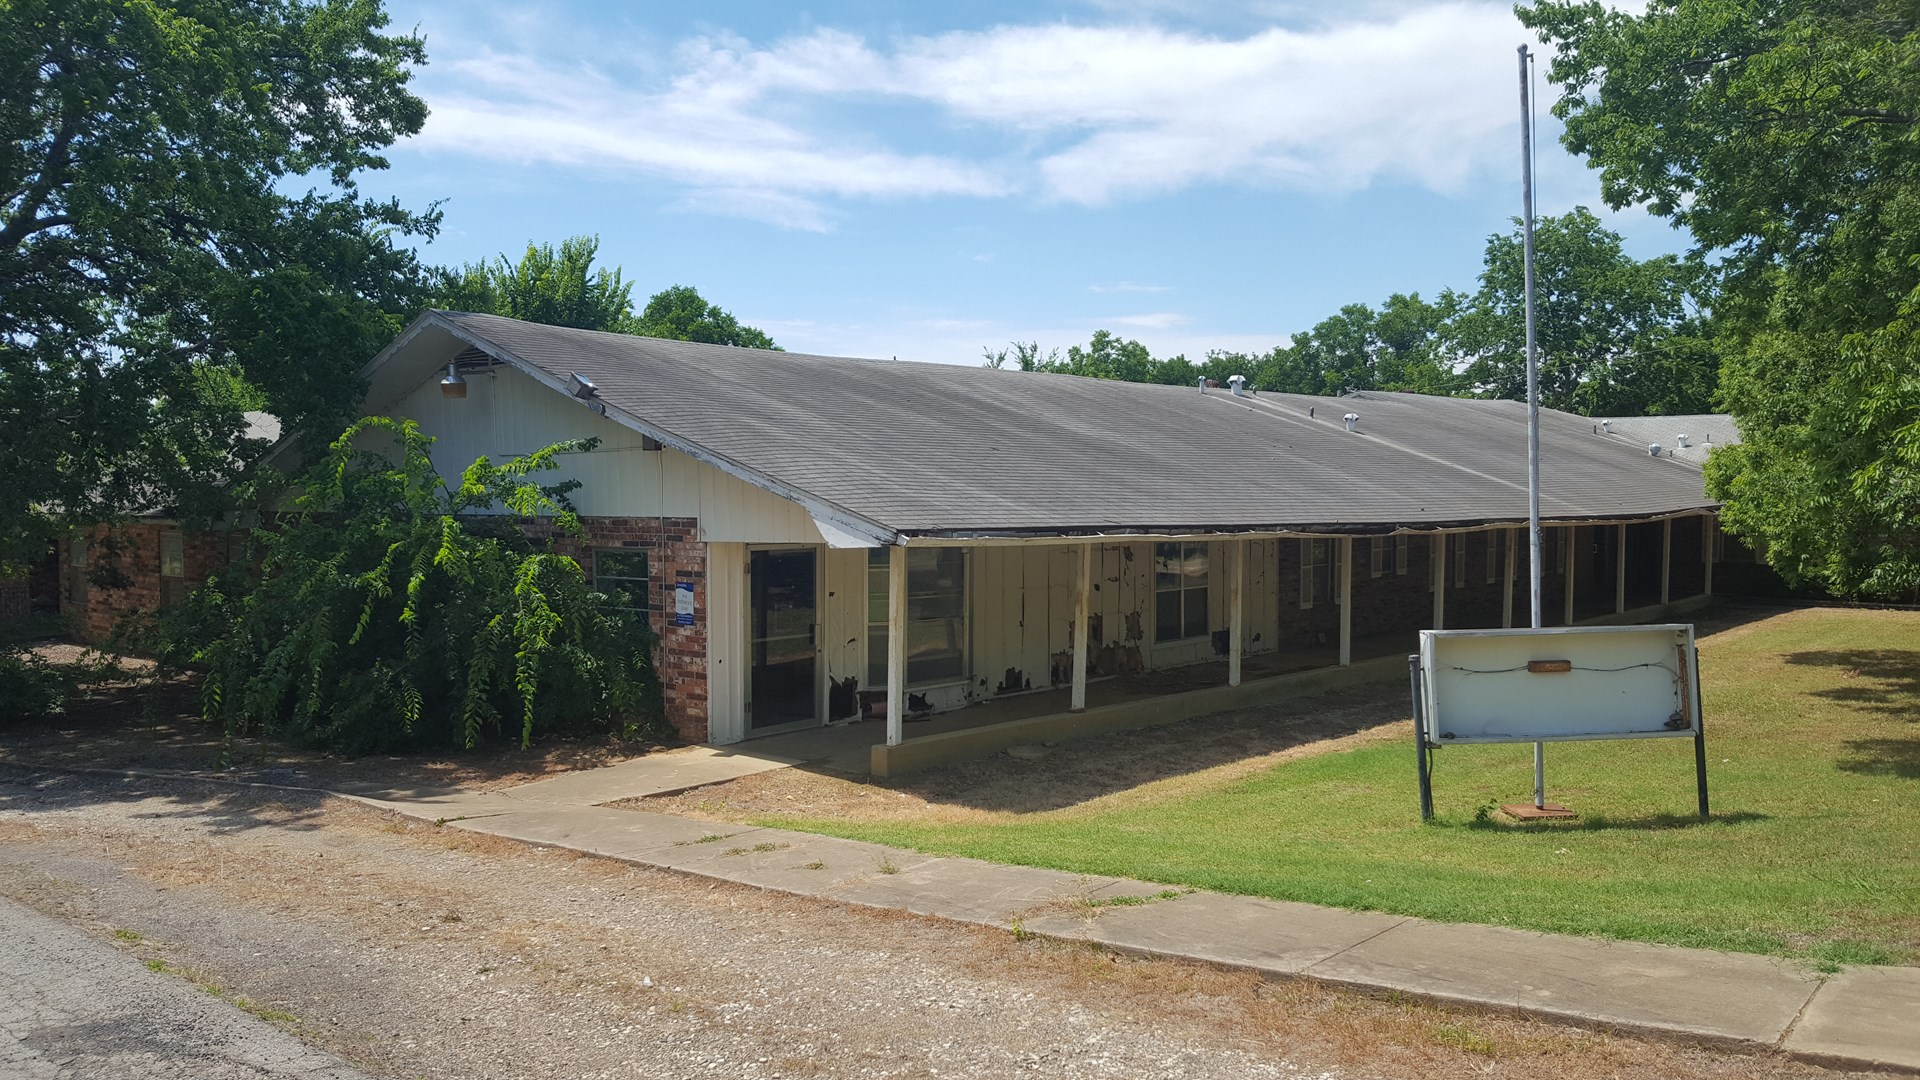 Lot 5 Large Building for Sale| Commercial Property Hugo, OK